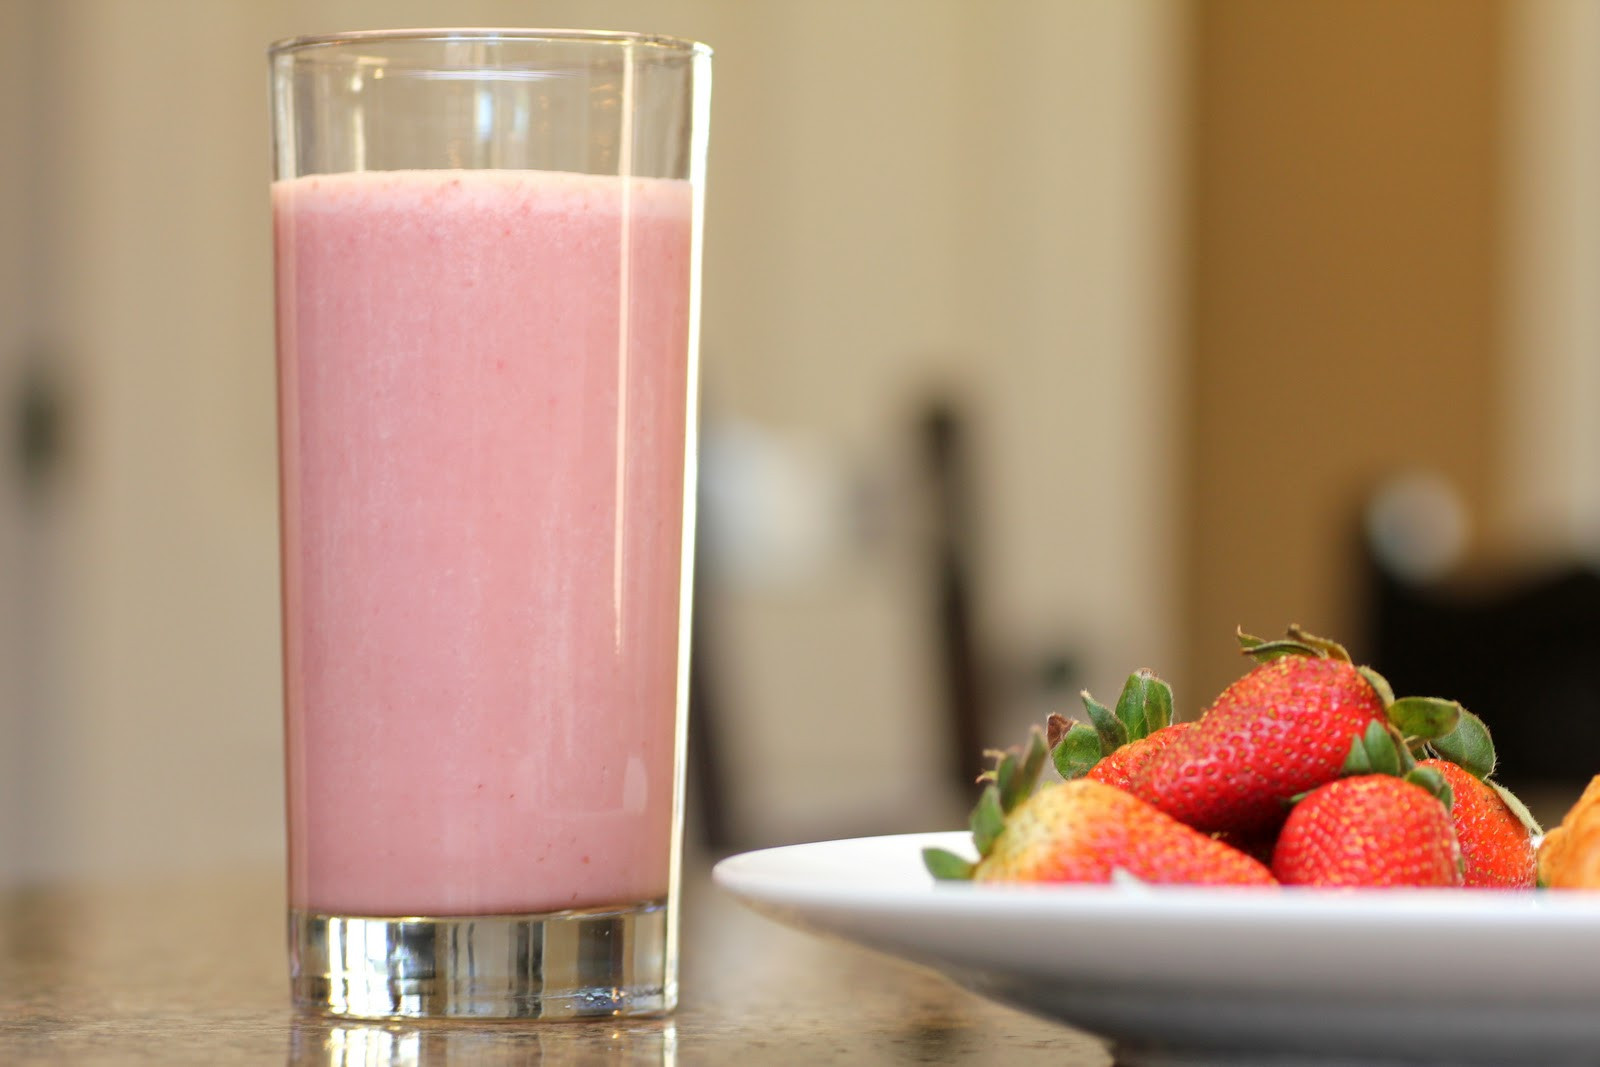 Strawberry Banana Protein Smoothies  Protein Shakes The Pros and Cons